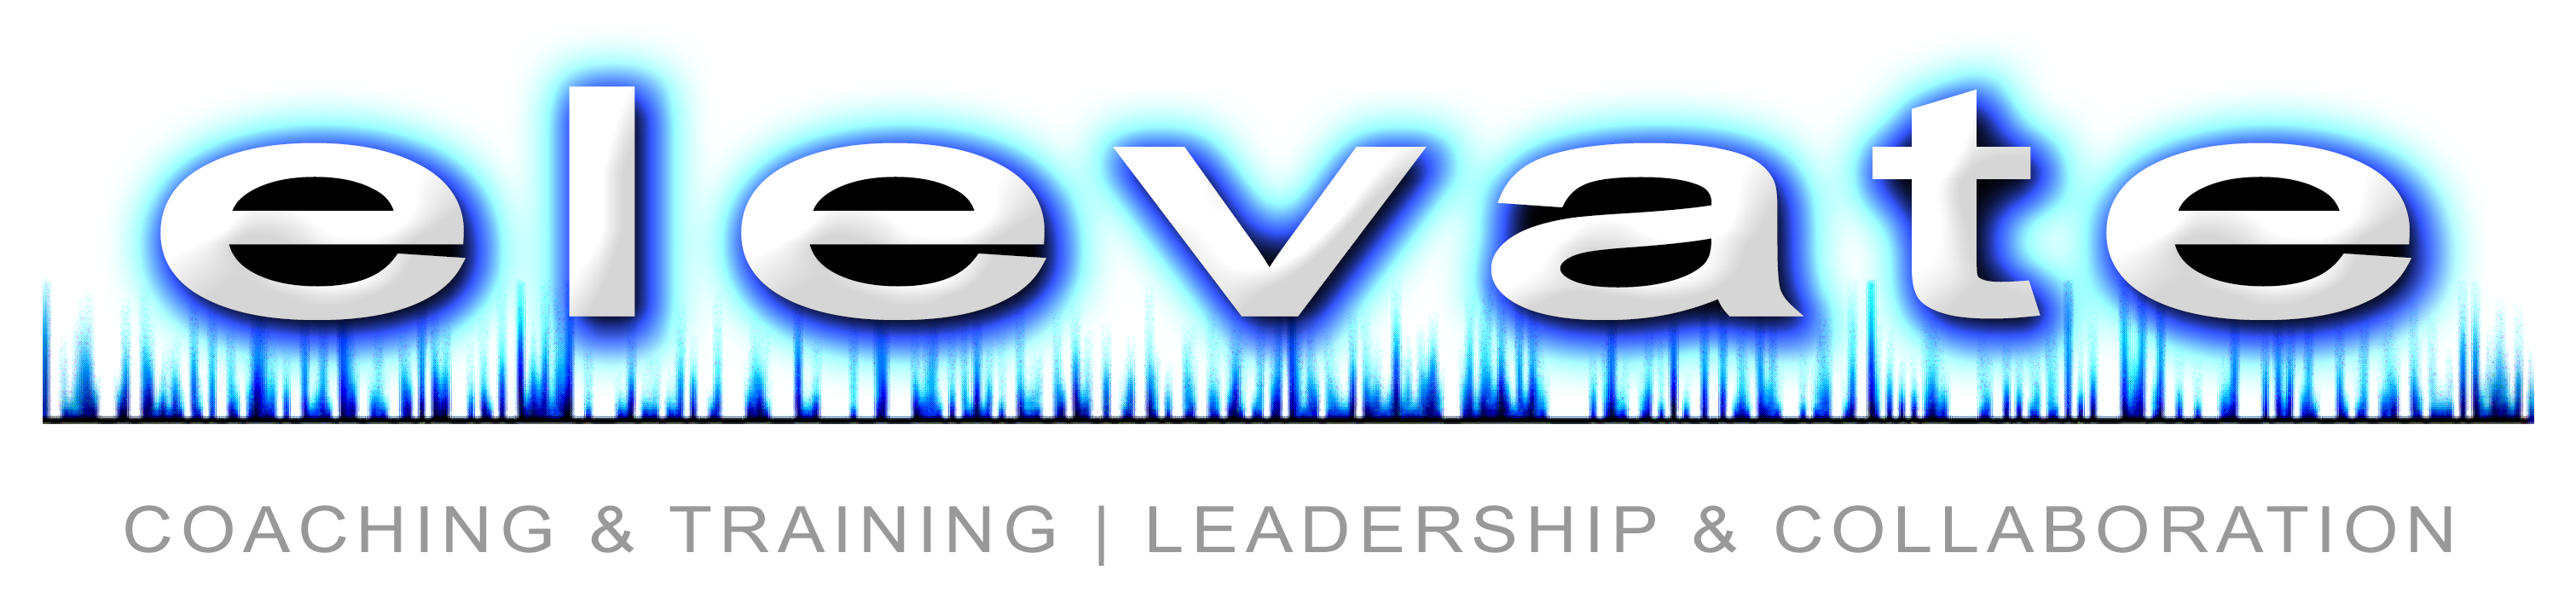 Elevate | Leadership & Collaboration Specialists